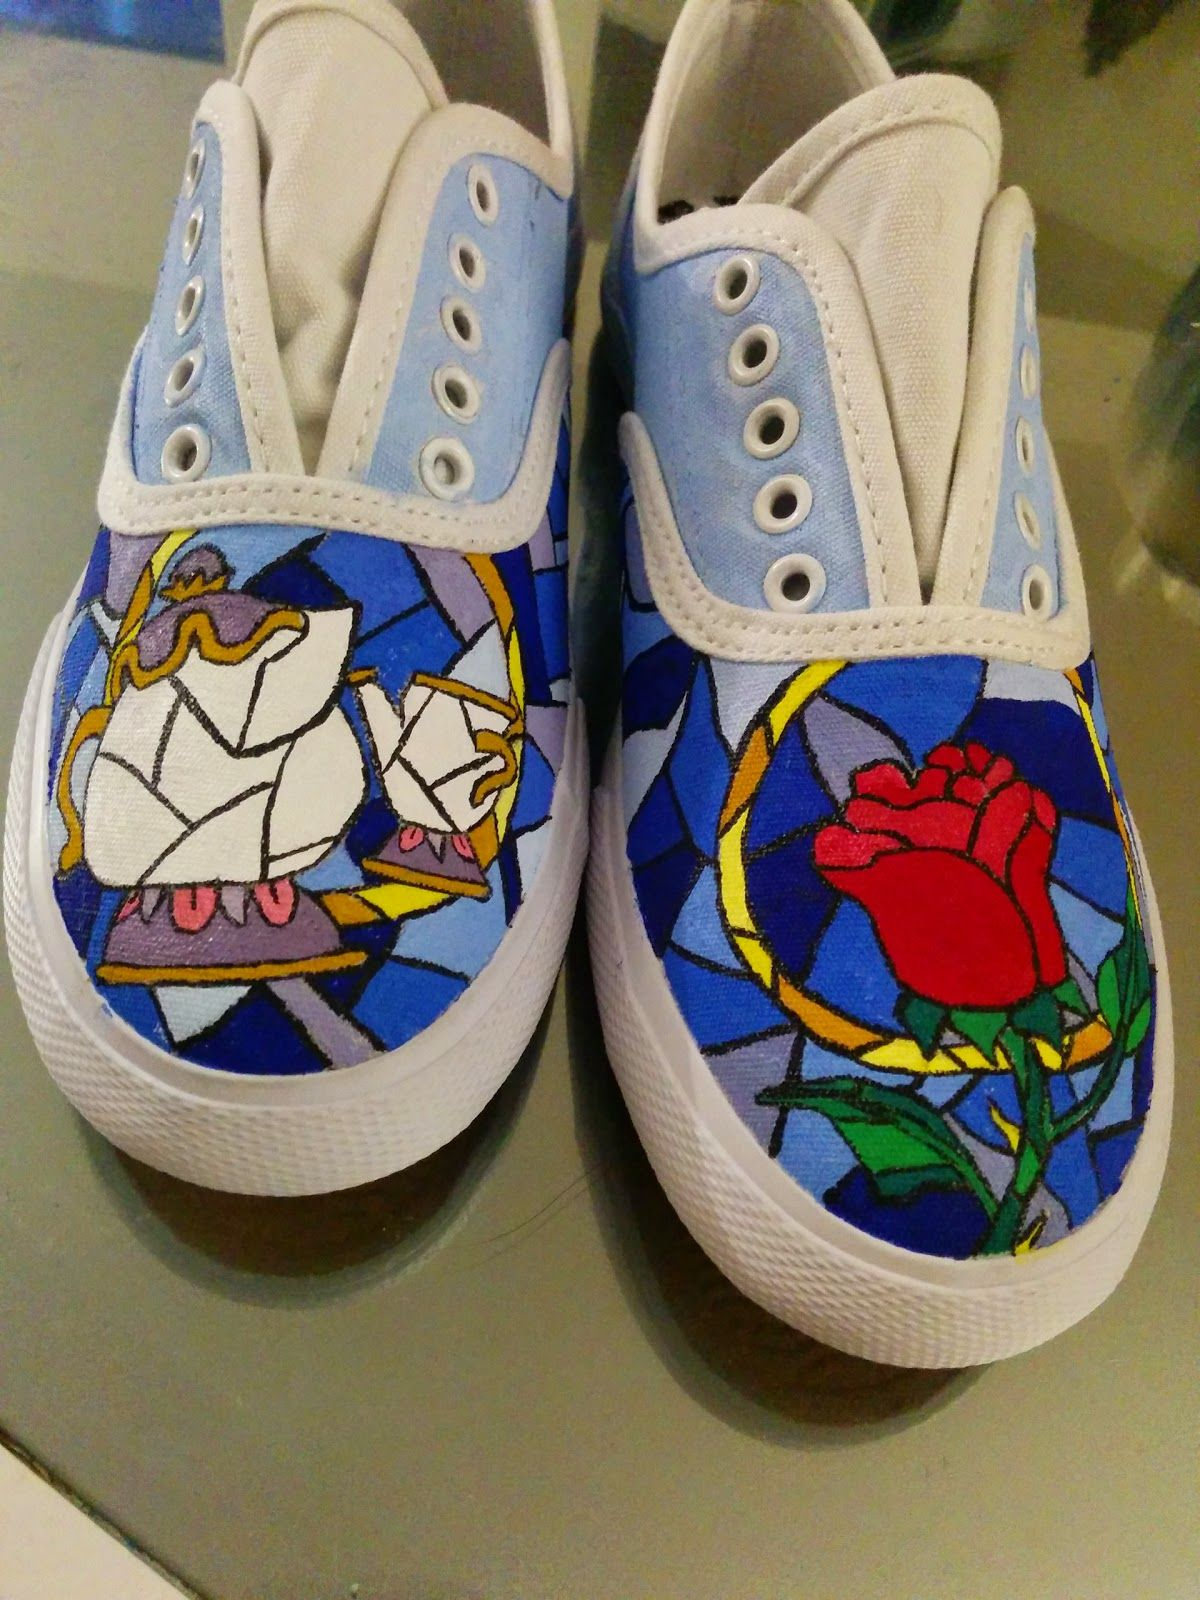 6ccd4390b51d59 Diy hand painted shoes! Beauty and the beast  )